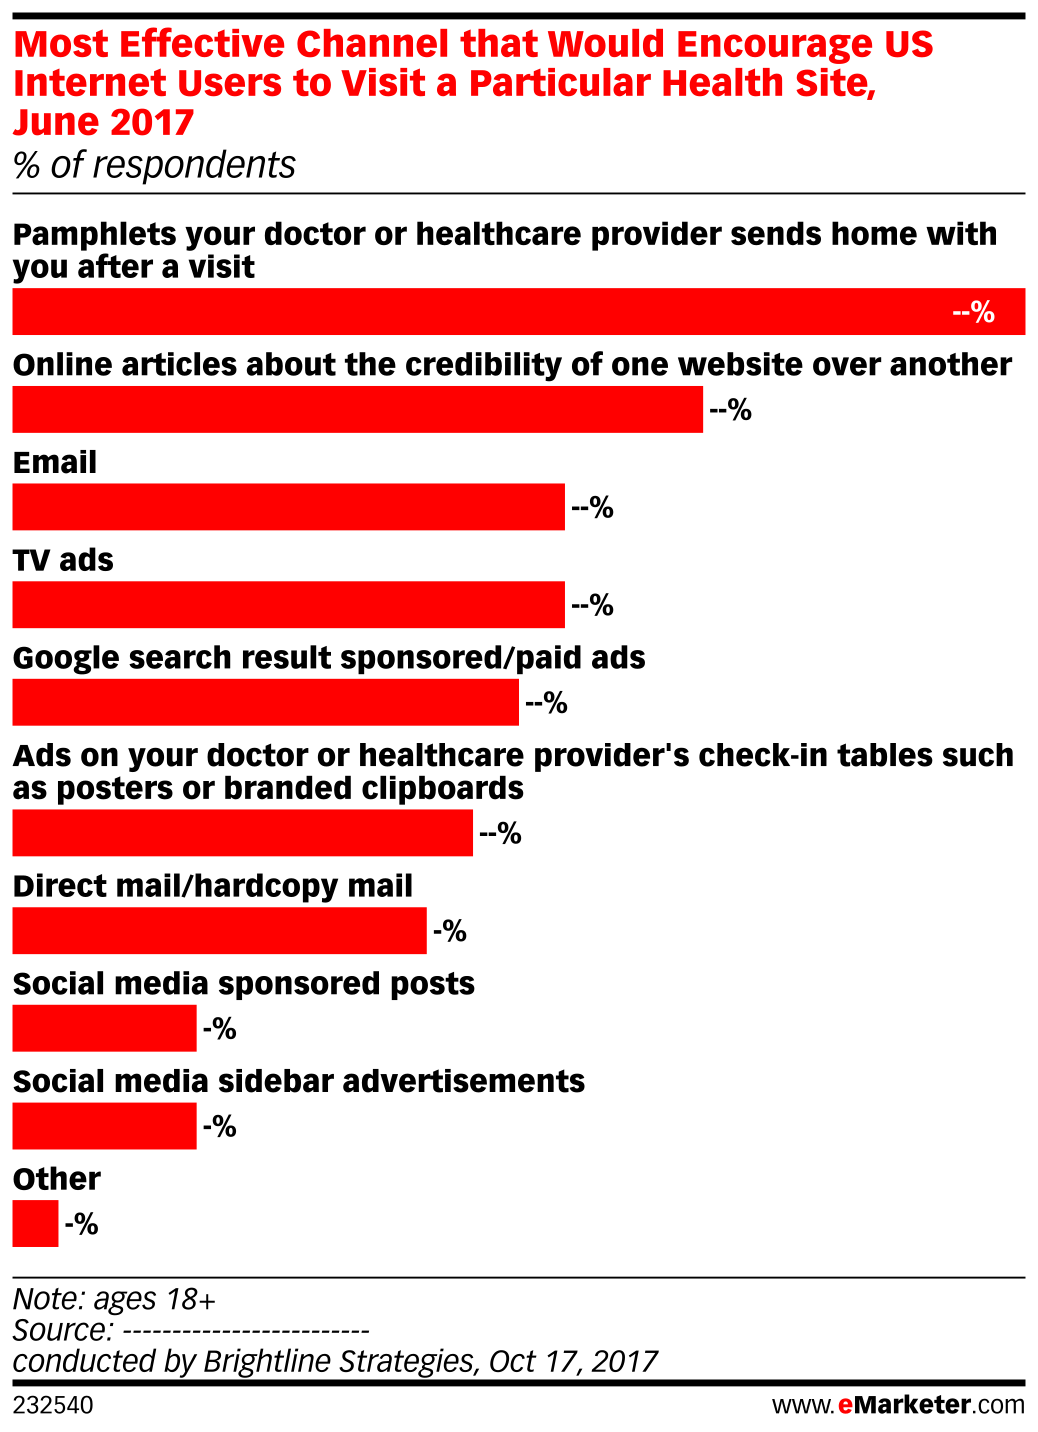 Most Effective Channel that Would Encourage US Internet Users to Visit a Particular Health Site, June 2017 (% of respondents)